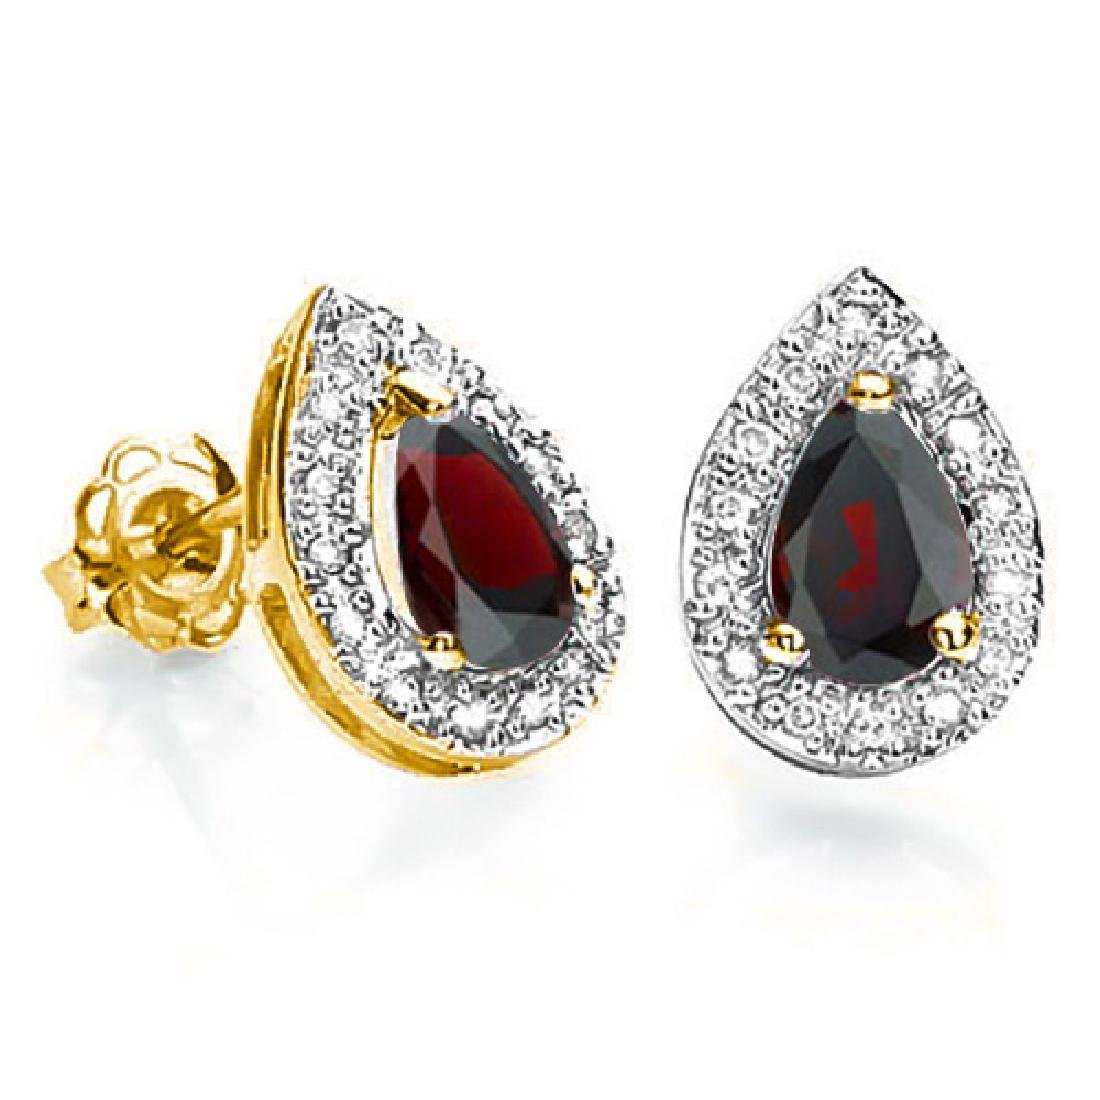 0.69 CT GARNET AND ACCENT DIAMOND 10KT SOLID YELLOW GOL